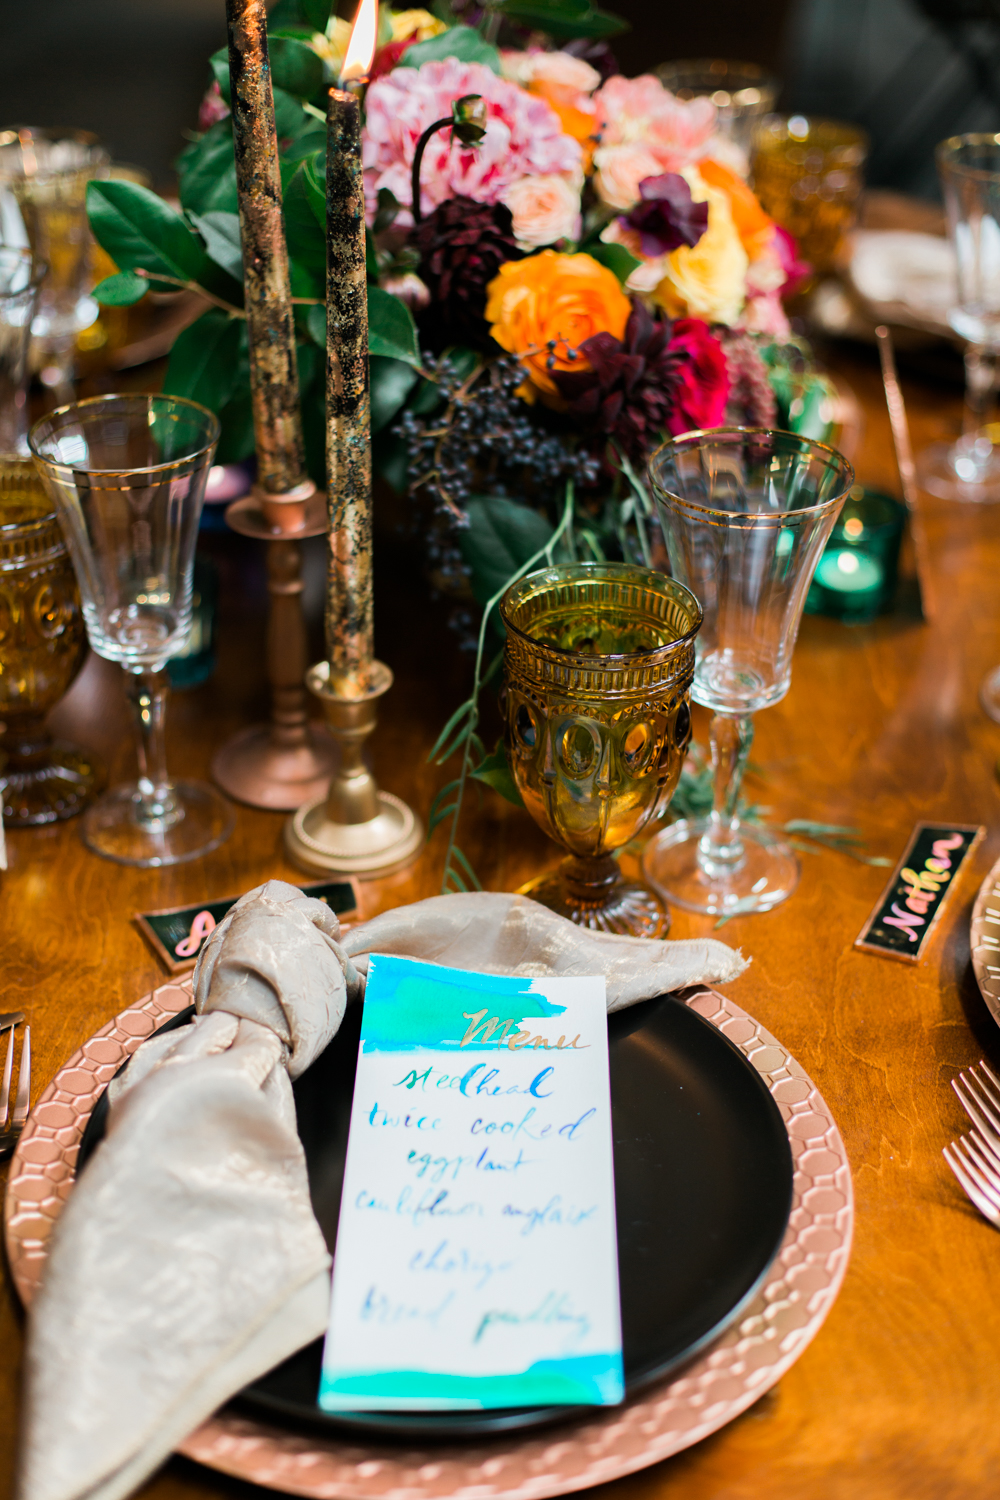 Moody & Colorful Fig House Inspired Wedding, Planned & Designed by Art & Soul Events, Pigment & Parchment Stationery Design